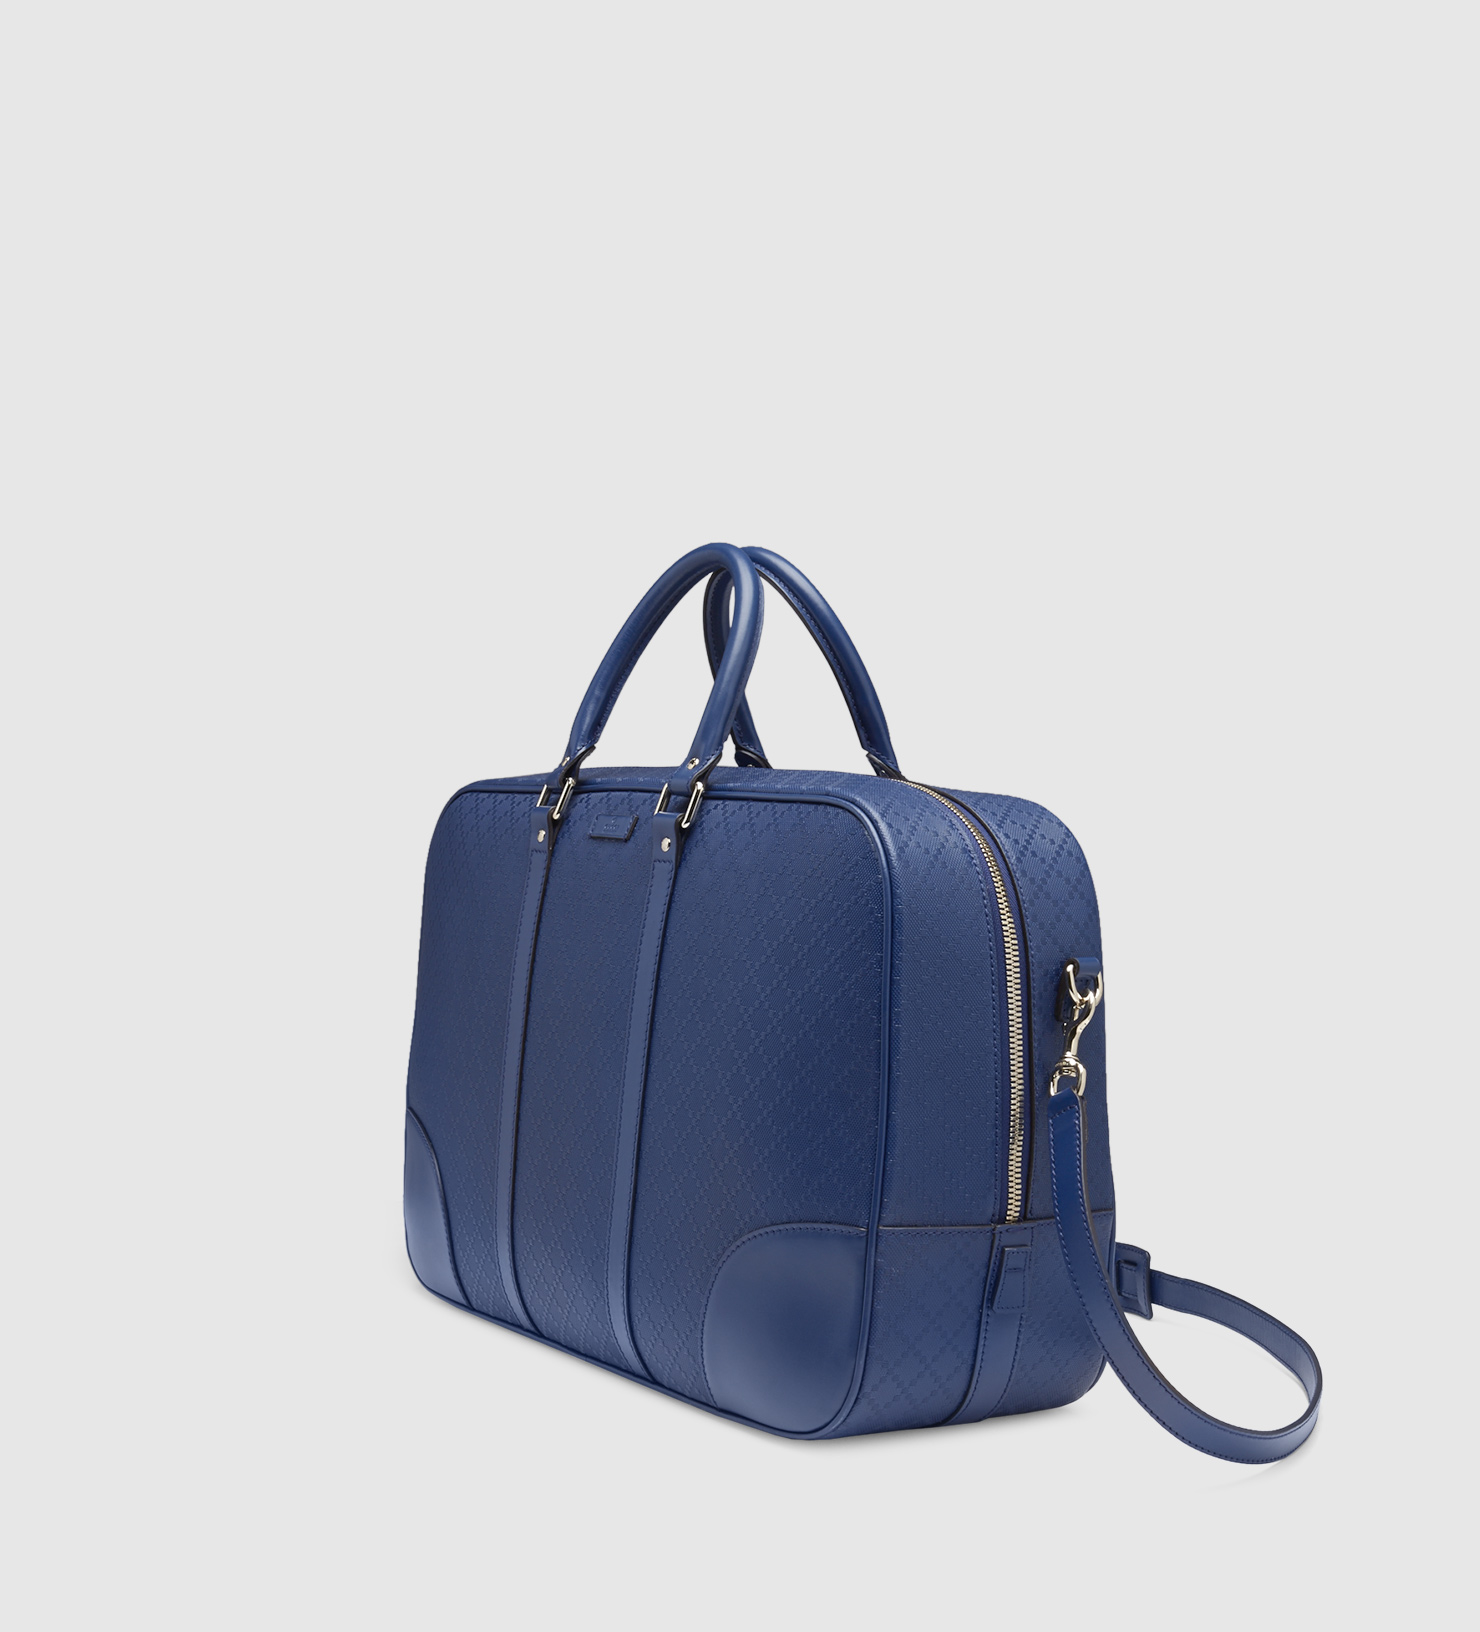 a75d2f7c320 Lyst - Gucci Bright Diamante Leather Duffle Bag in Blue for Men